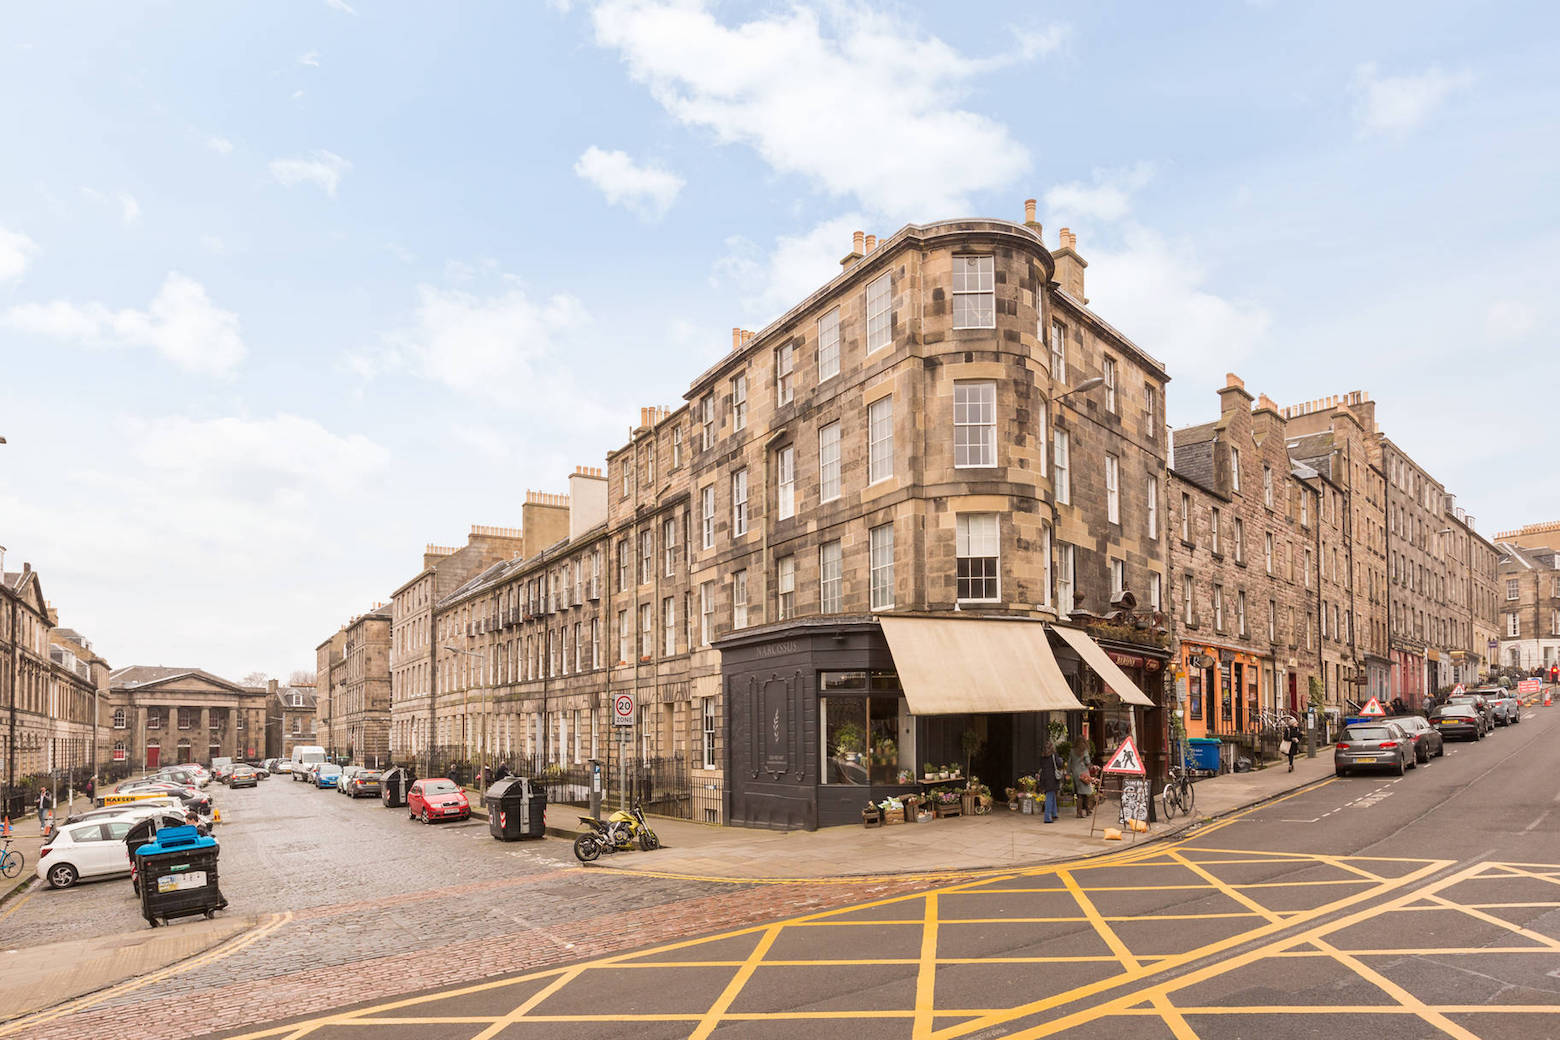 Broughton Place, Edinburgh, photography by Square Foot Media